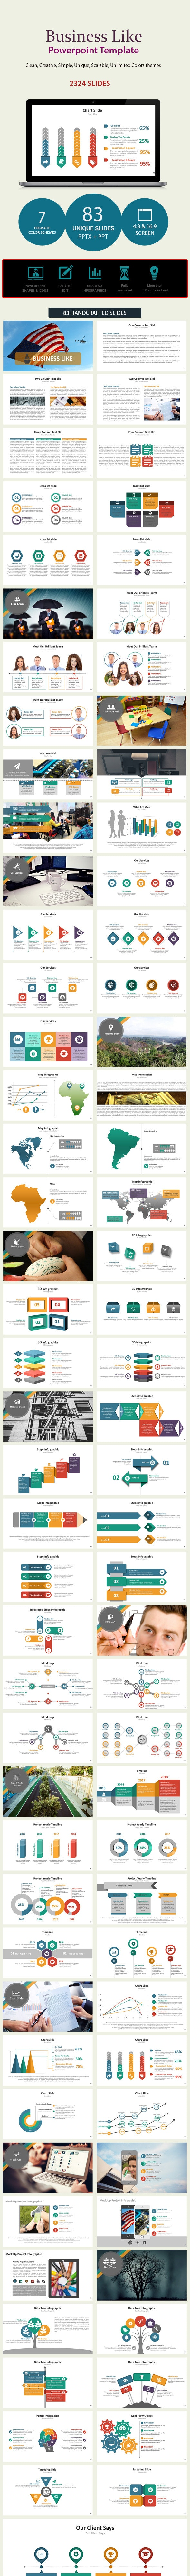 Business Like Presentation Template - PowerPoint Templates Presentation Templates